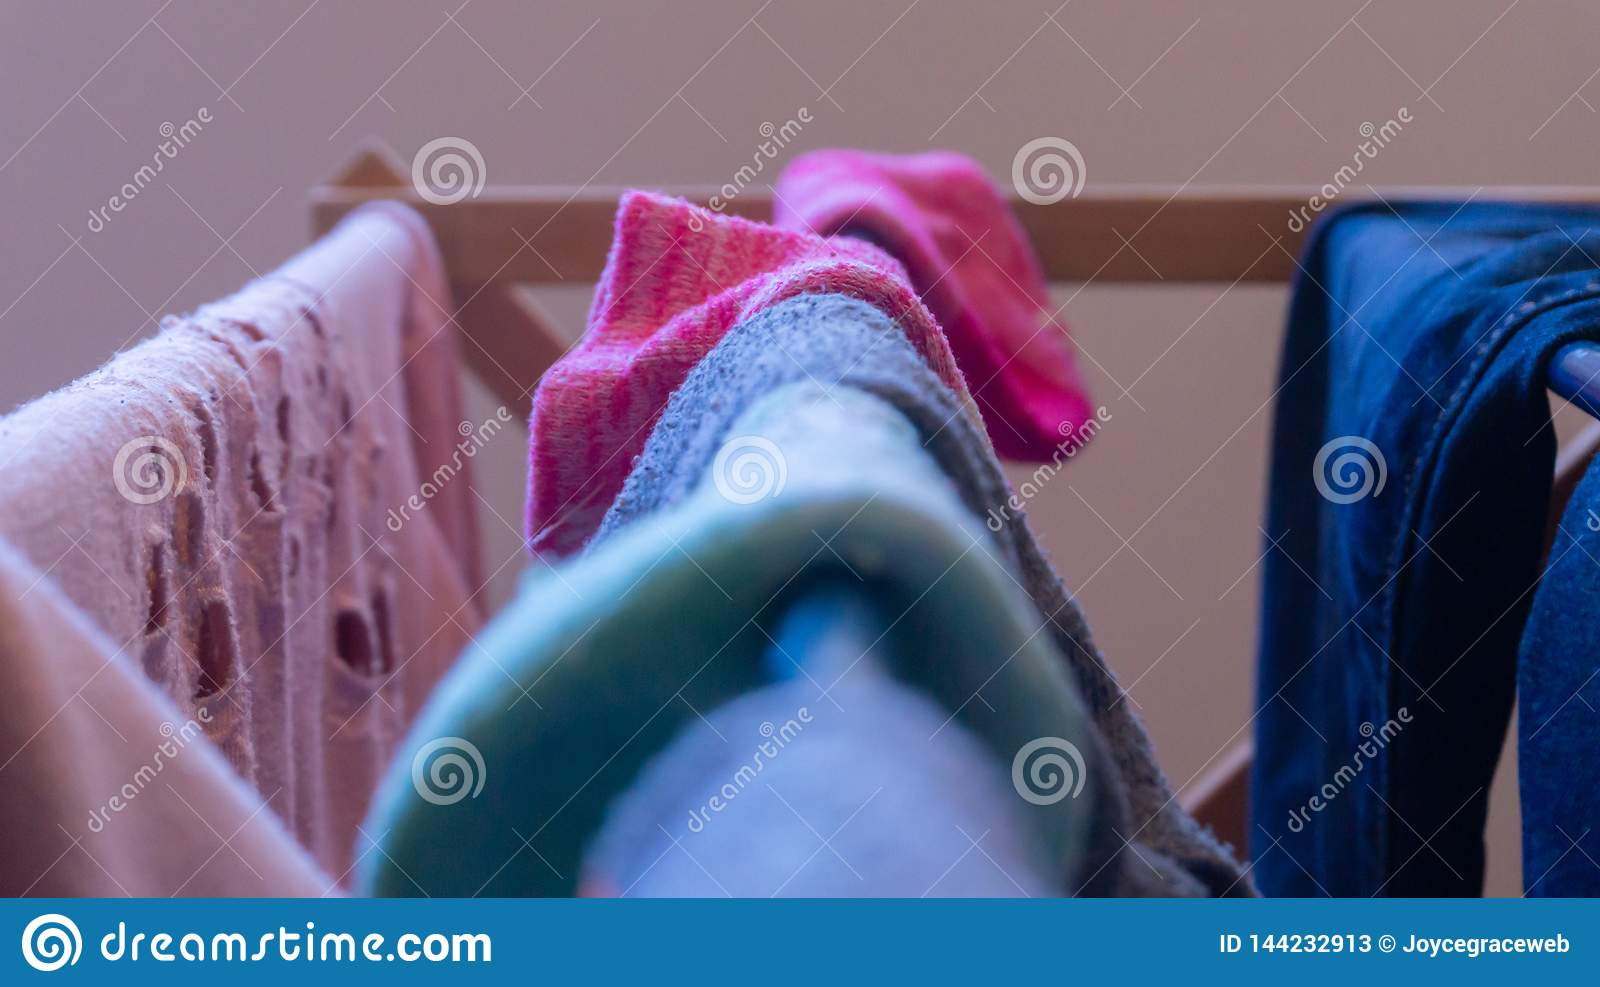 Focus on a pink sock drying on a laundry rack with other woman`s clothes, and mismatched socks blurred in the foreground.